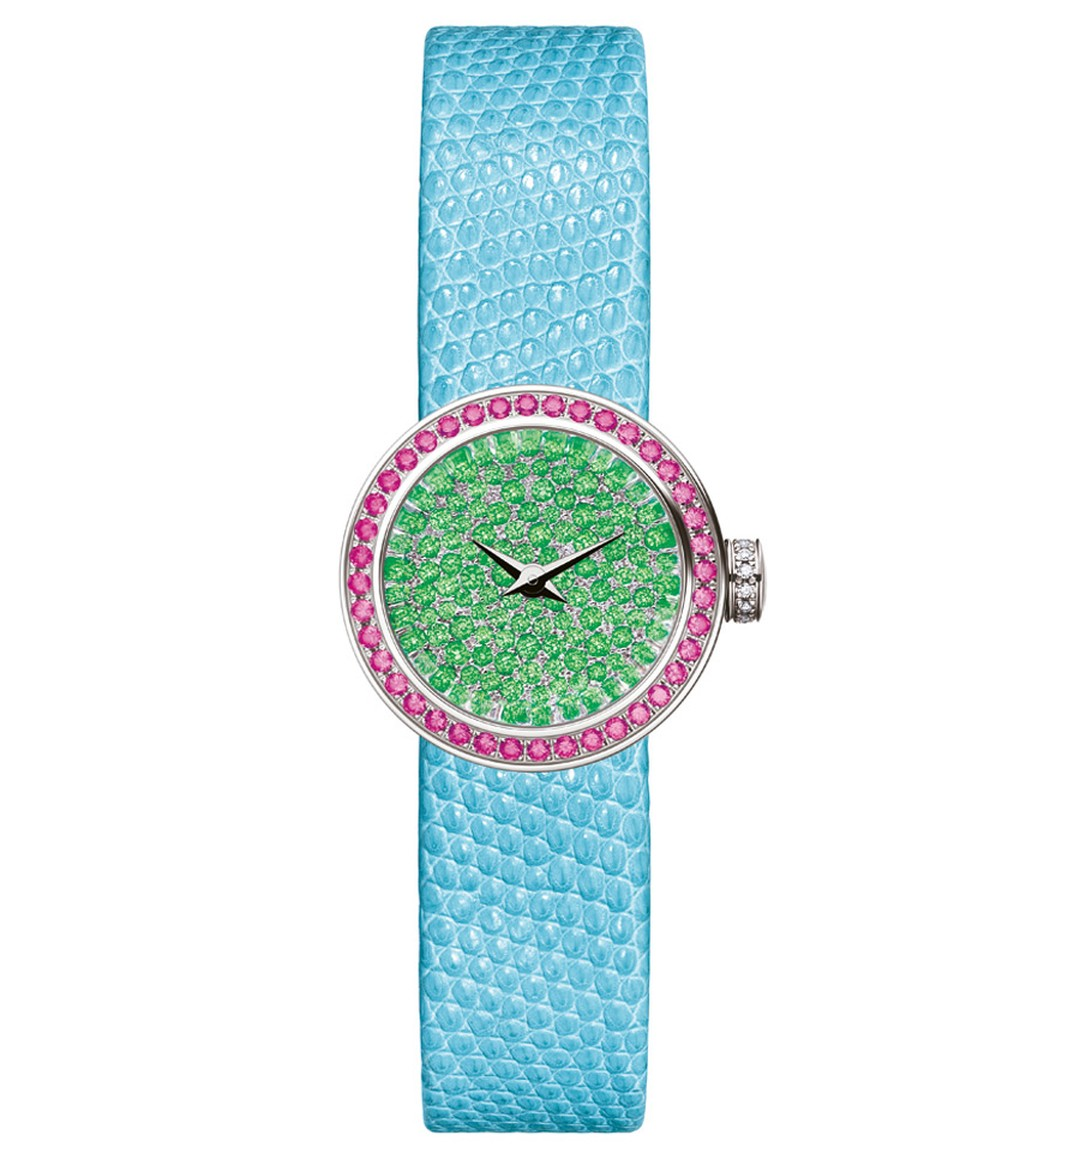 LA-MINI-D-DE-DIOR-SNOW-SET-DIAL-TSAVORITE-GARNETS-19mm